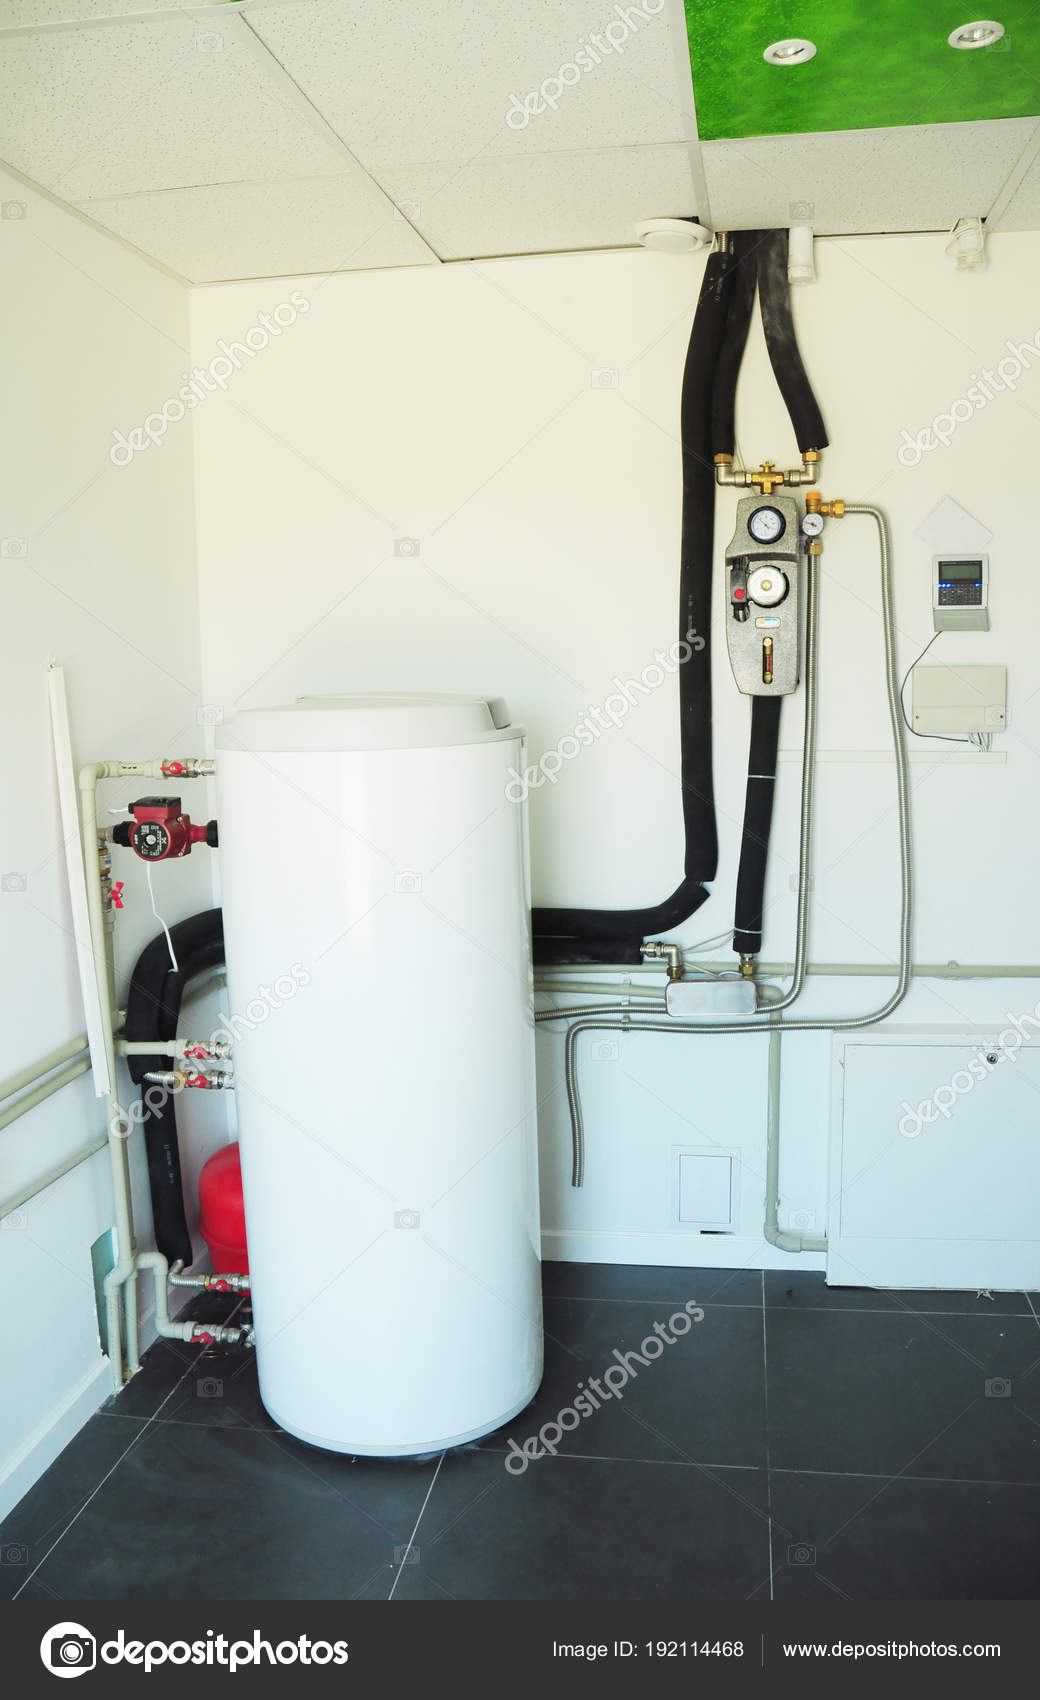 Boiler room with solar water heater tank for house energy efficiency ...